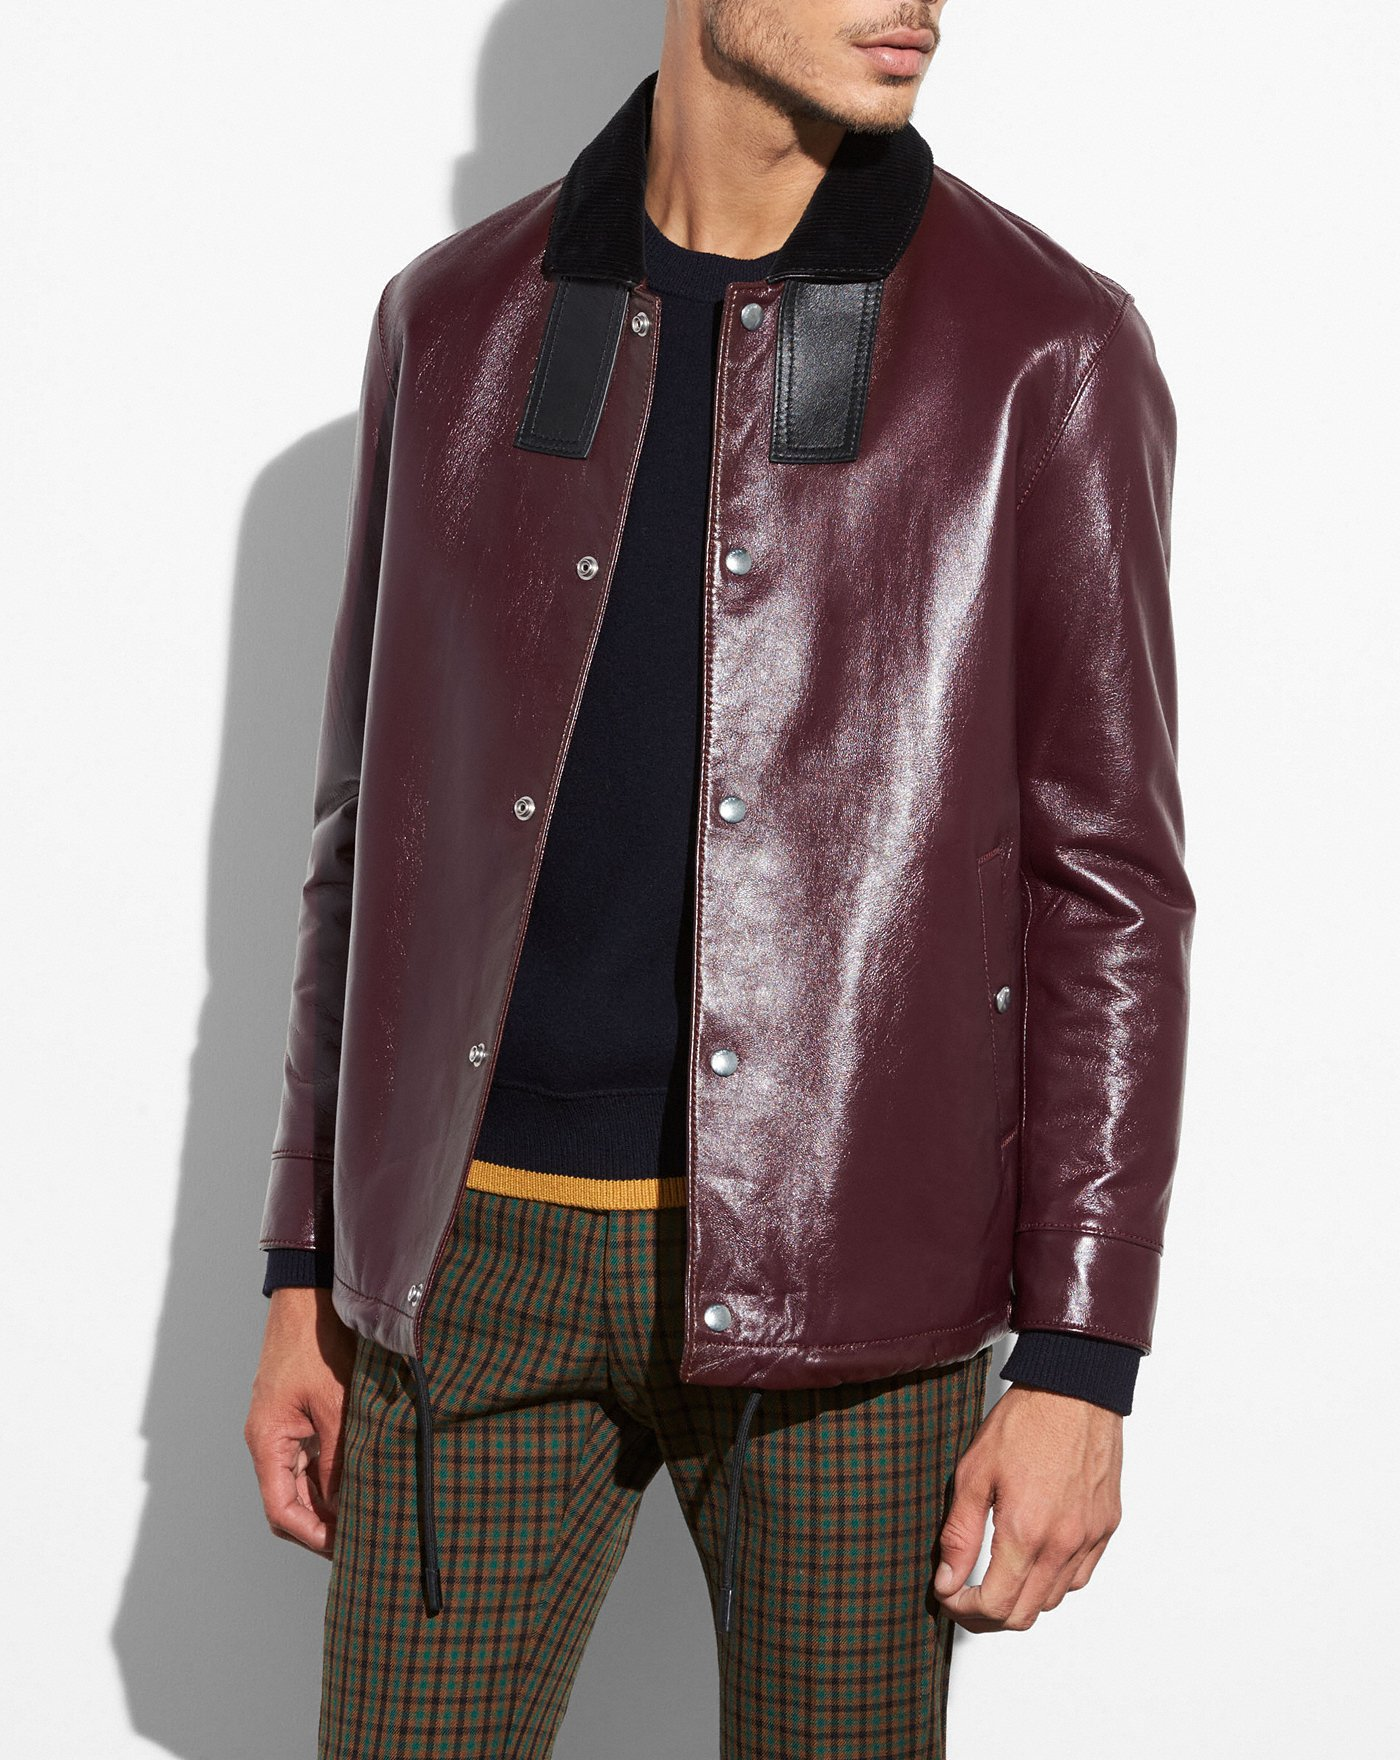 s brioni jackets coats flip consignment mens jacket luxury rug and black collections outerwear it leather rugged men